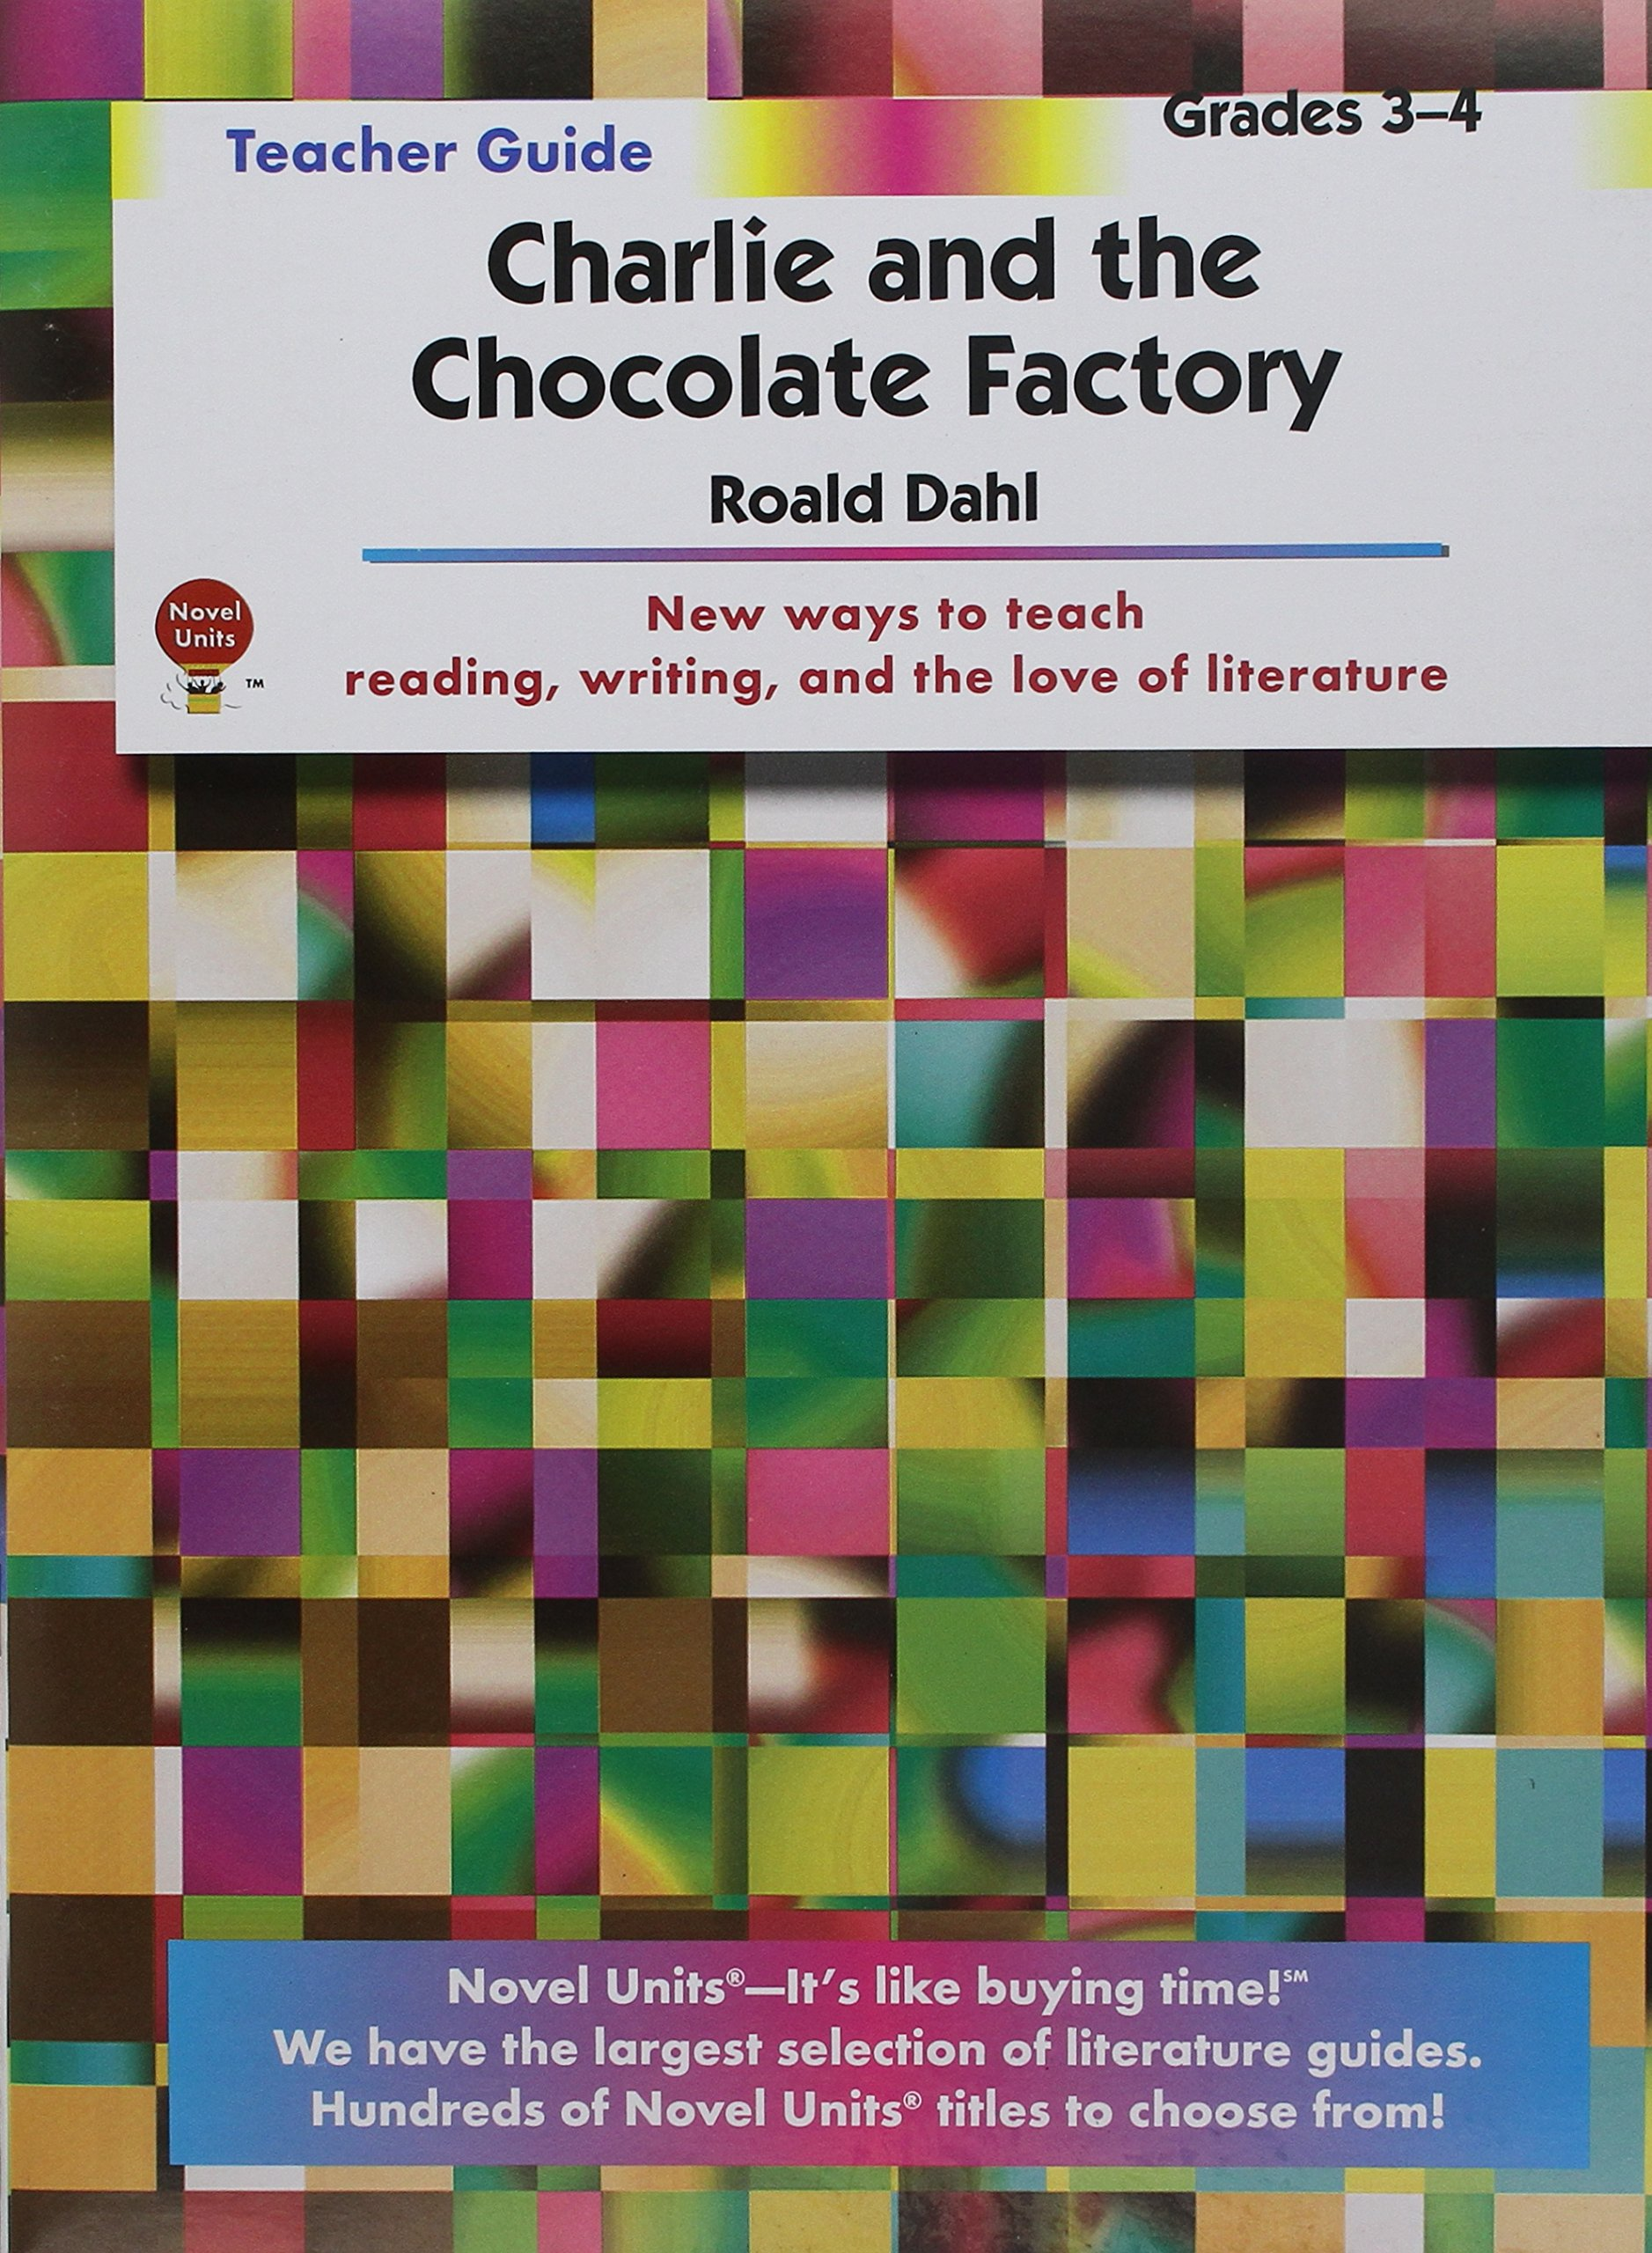 charlie and the chocolate factory by roald dahl novel units charlie and the chocolate factory by roald dahl novel units teacher guide novel units inc 9781561371907 com books